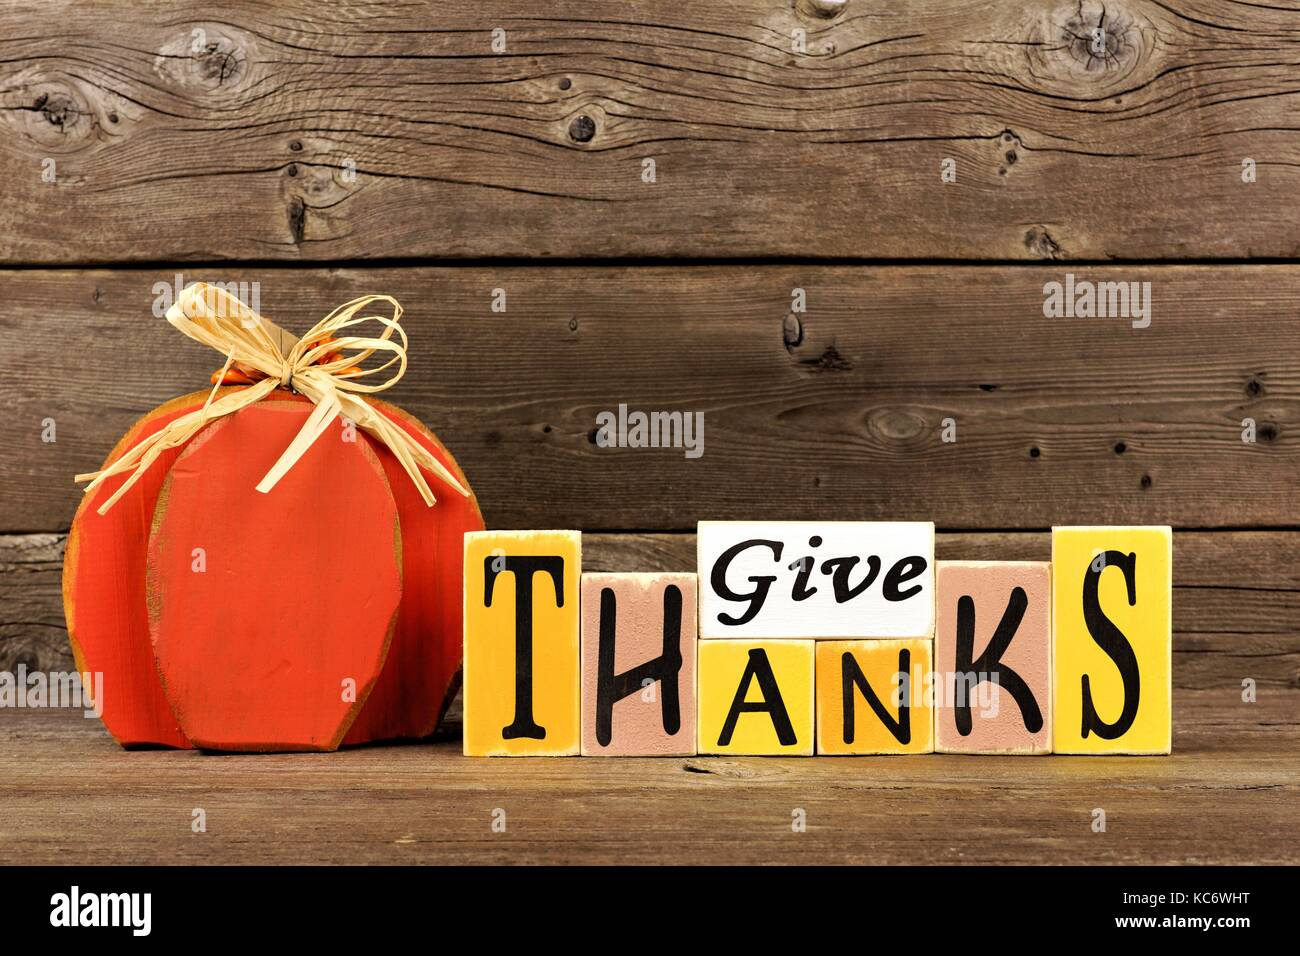 Shabby chic Give Thanks wood sign and pumpkin against a rustic wooden background - Stock Image